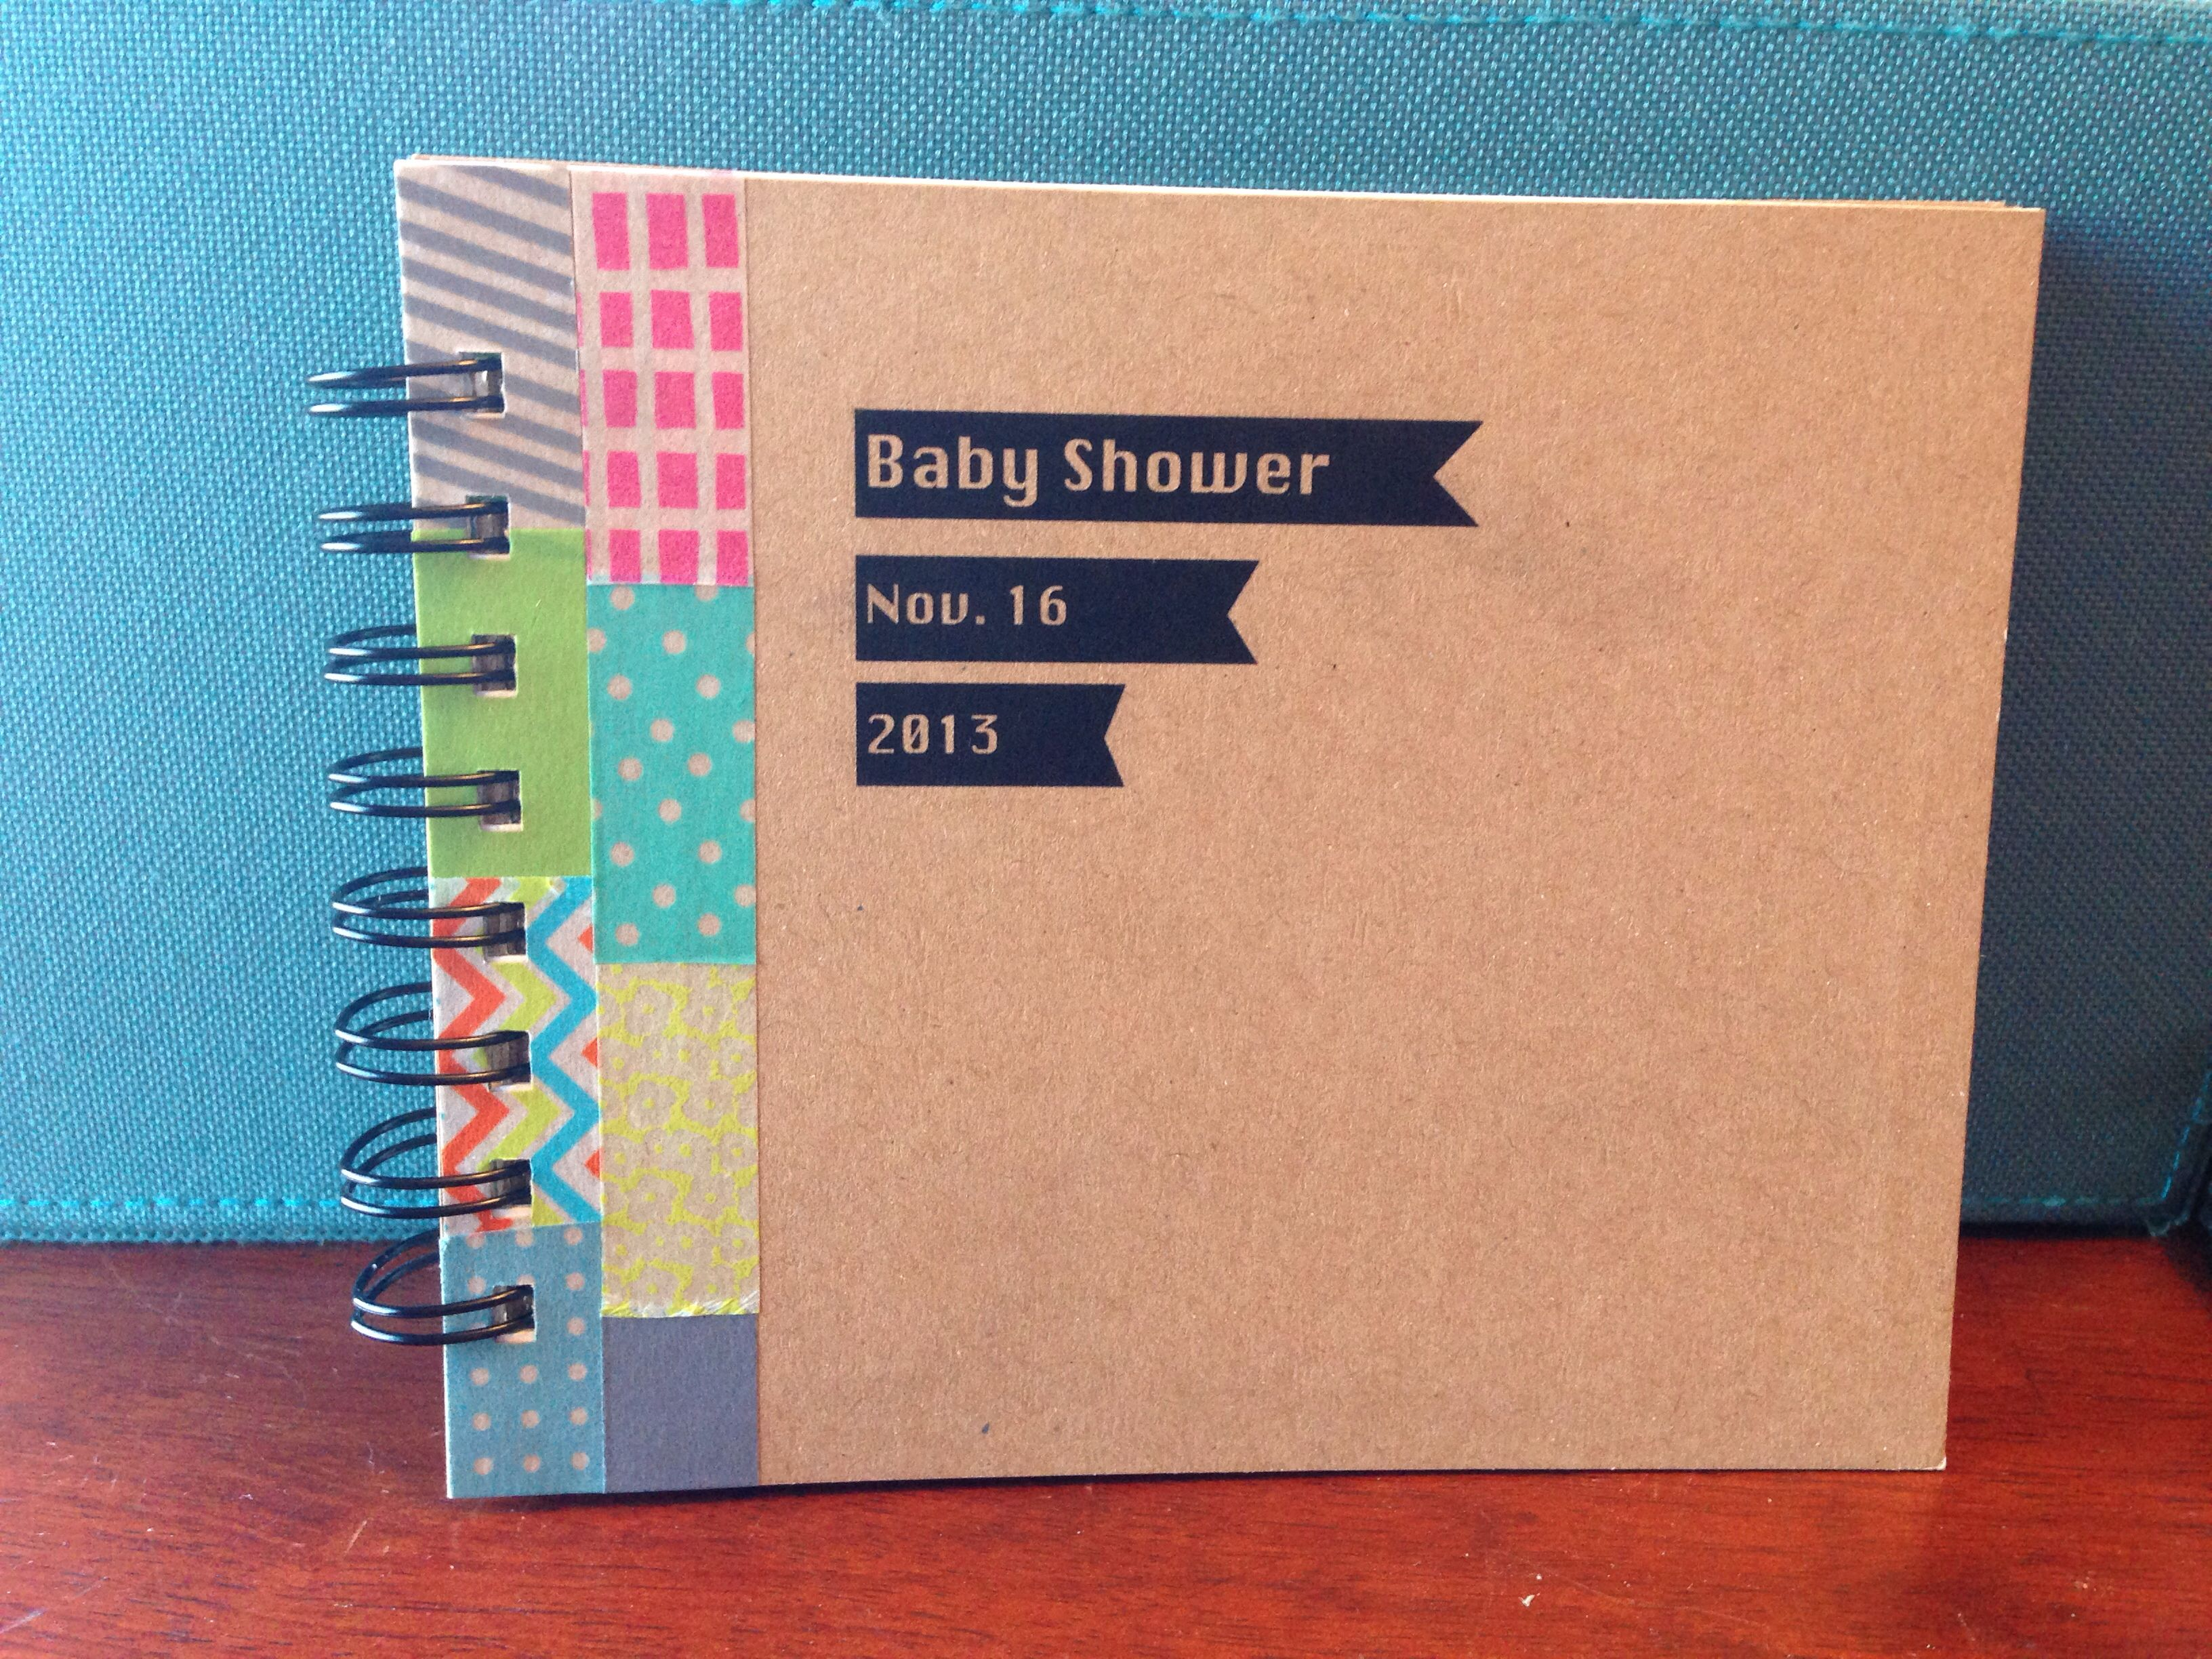 Baby Shower Guest Book Diy ~ Diy baby shower guest book i am thinking of borrowing a